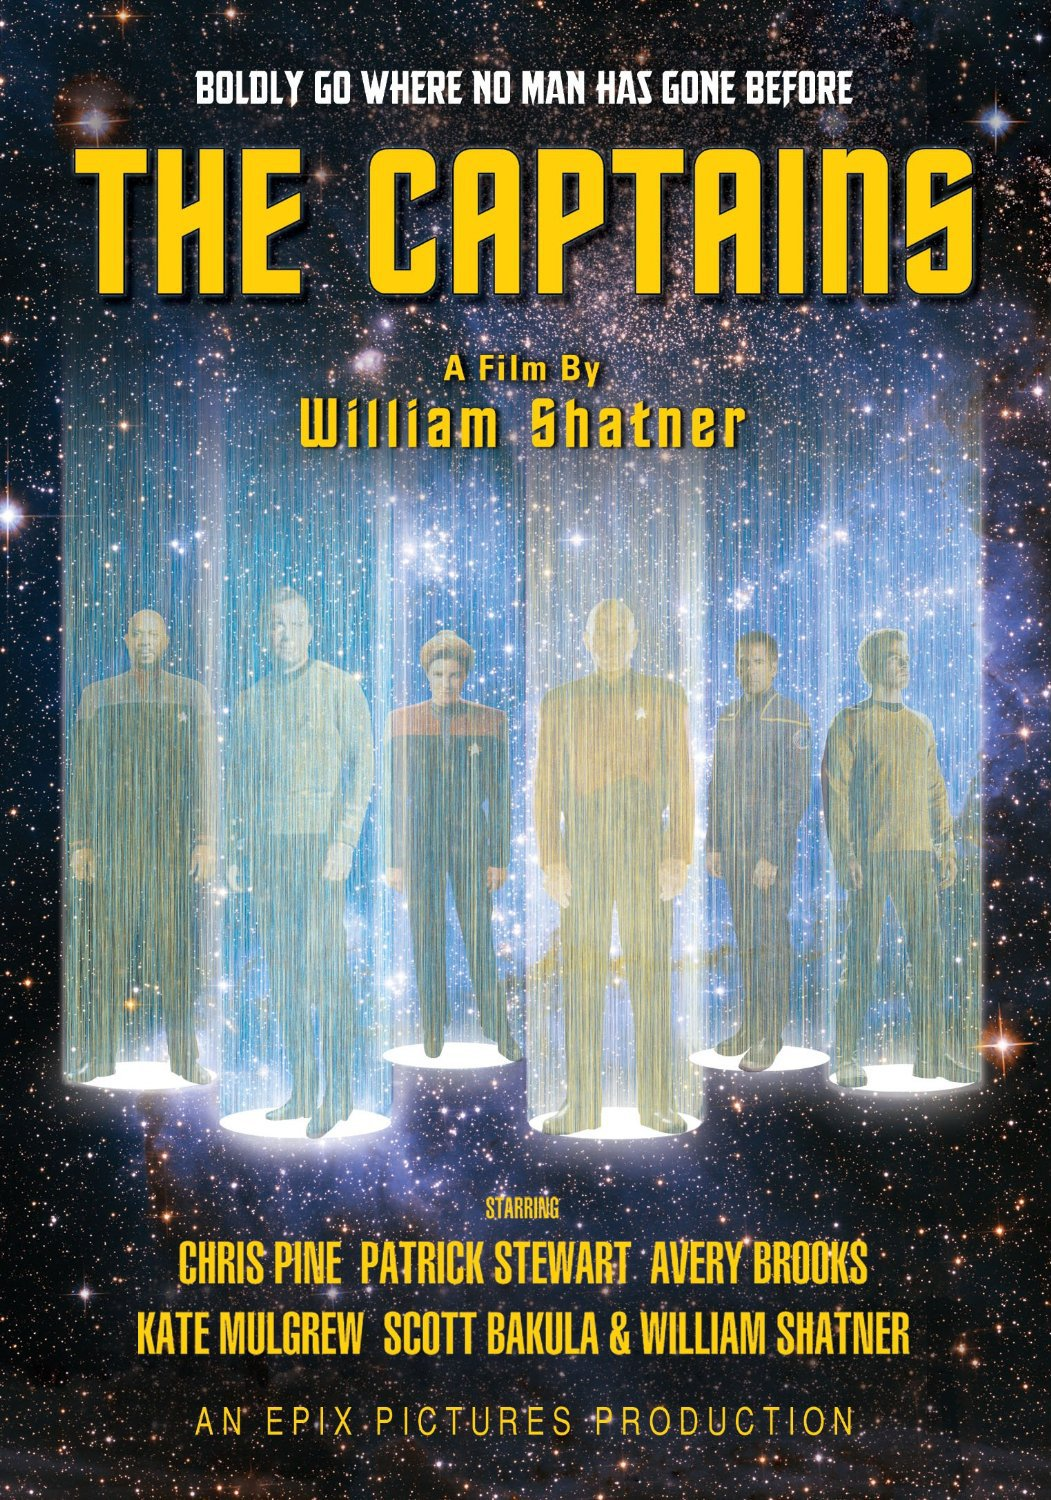 the captains recenzja filmu star trek shatner kirk picard stewart